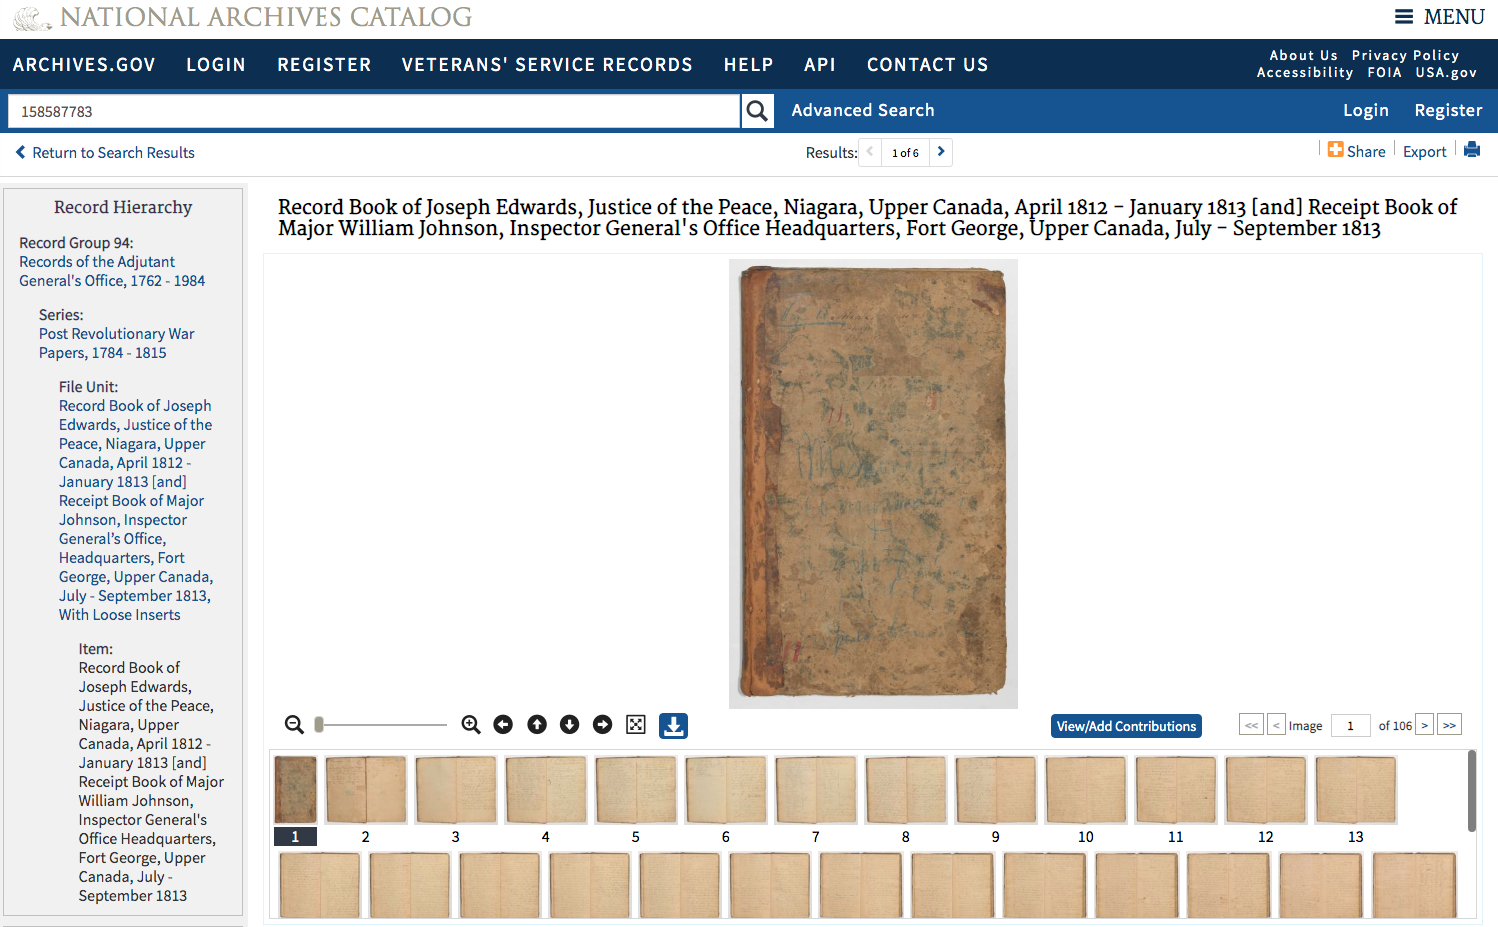 Screen shot of the Record Book of Joseph Edwards in the National Archives Catalog.